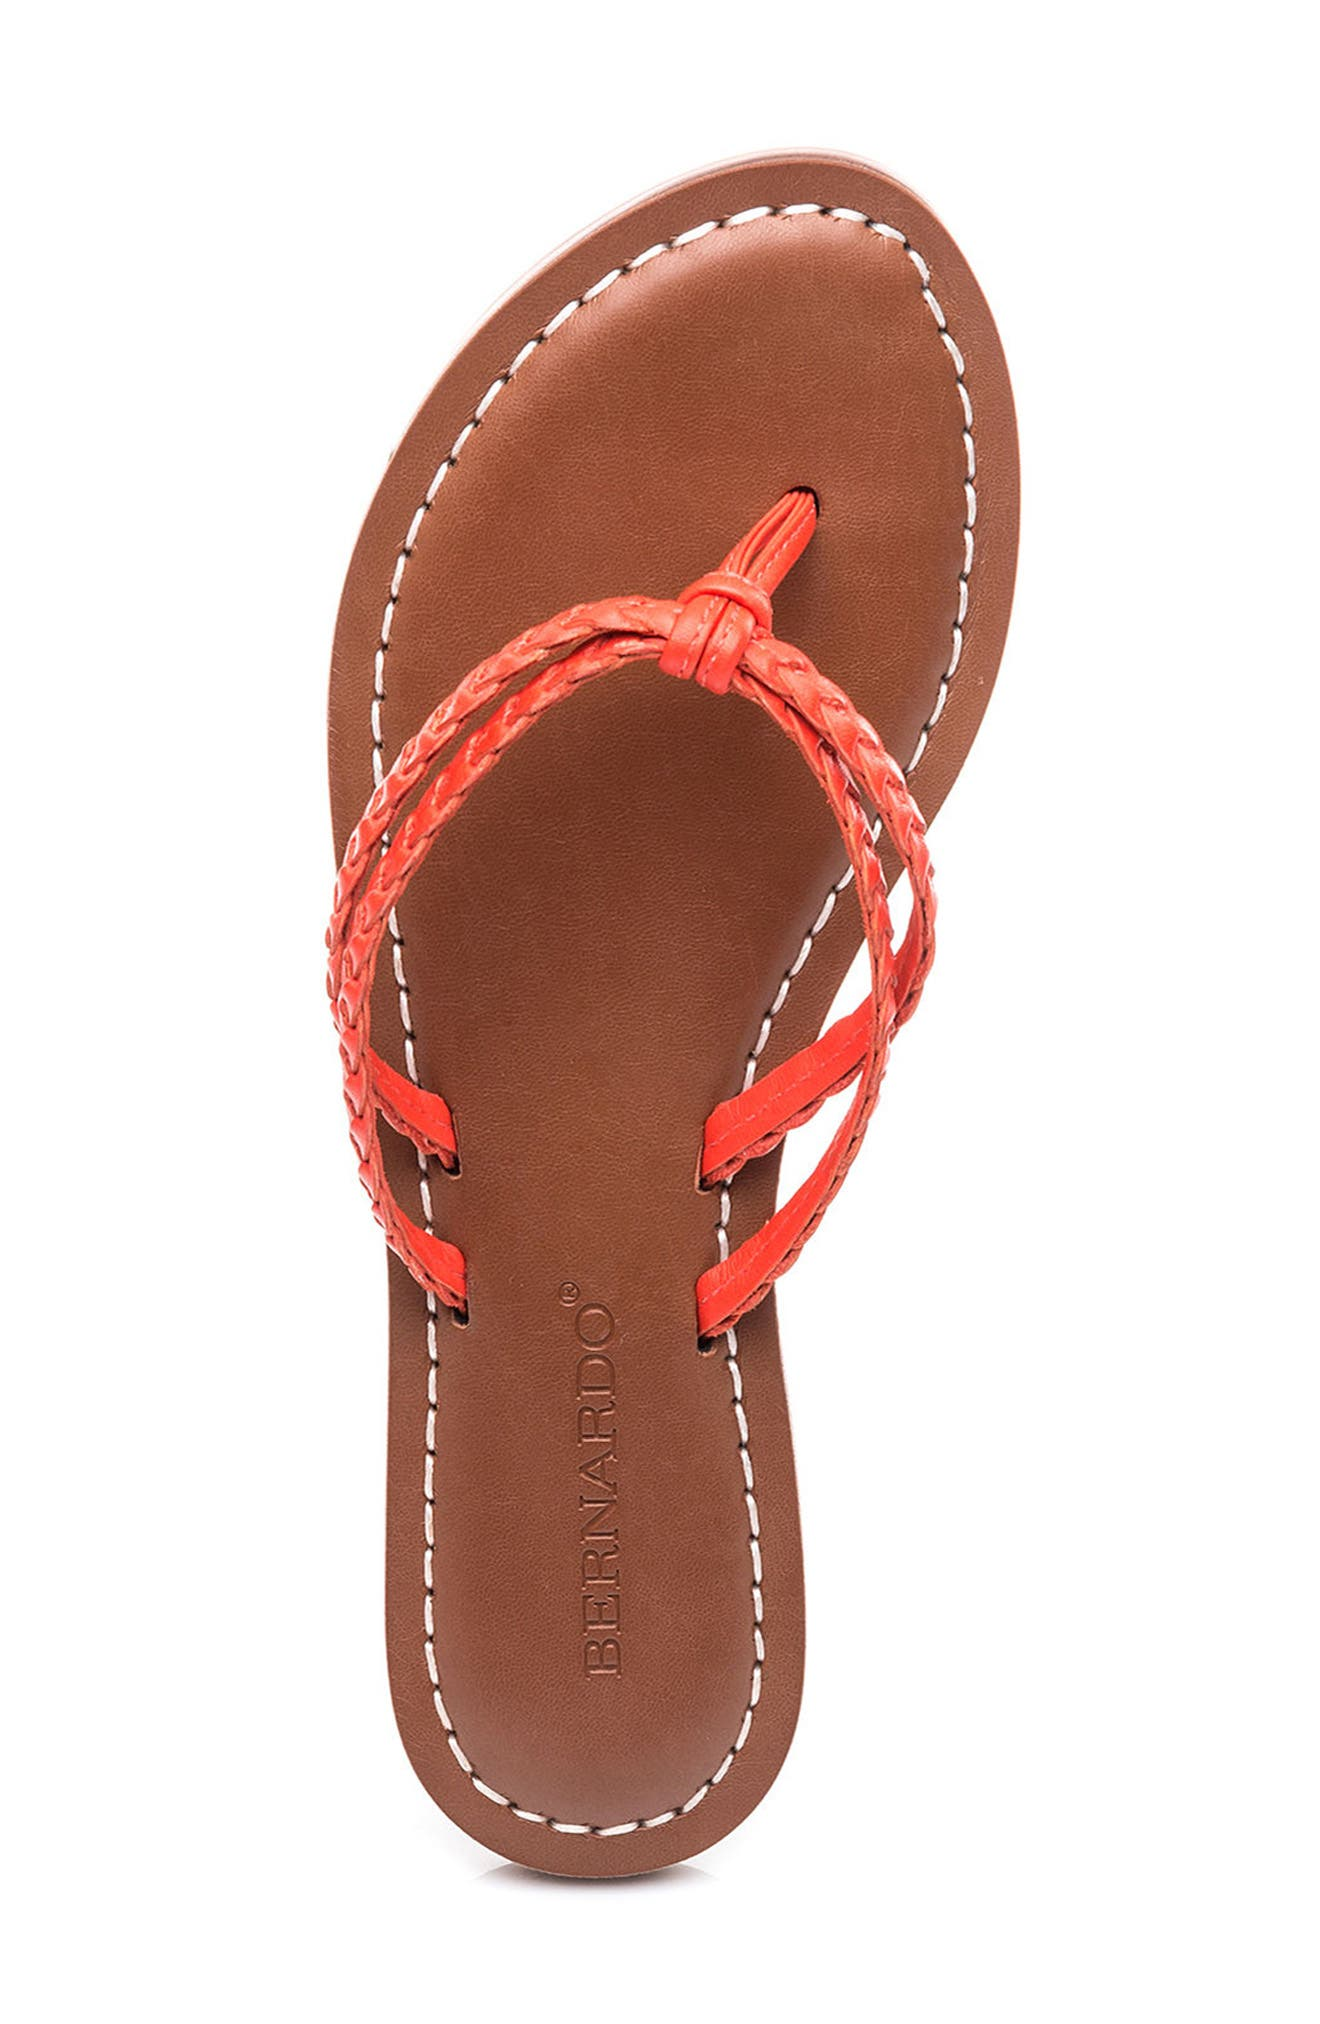 Bernardo Greta Braided Strap Sandal,                             Alternate thumbnail 35, color,